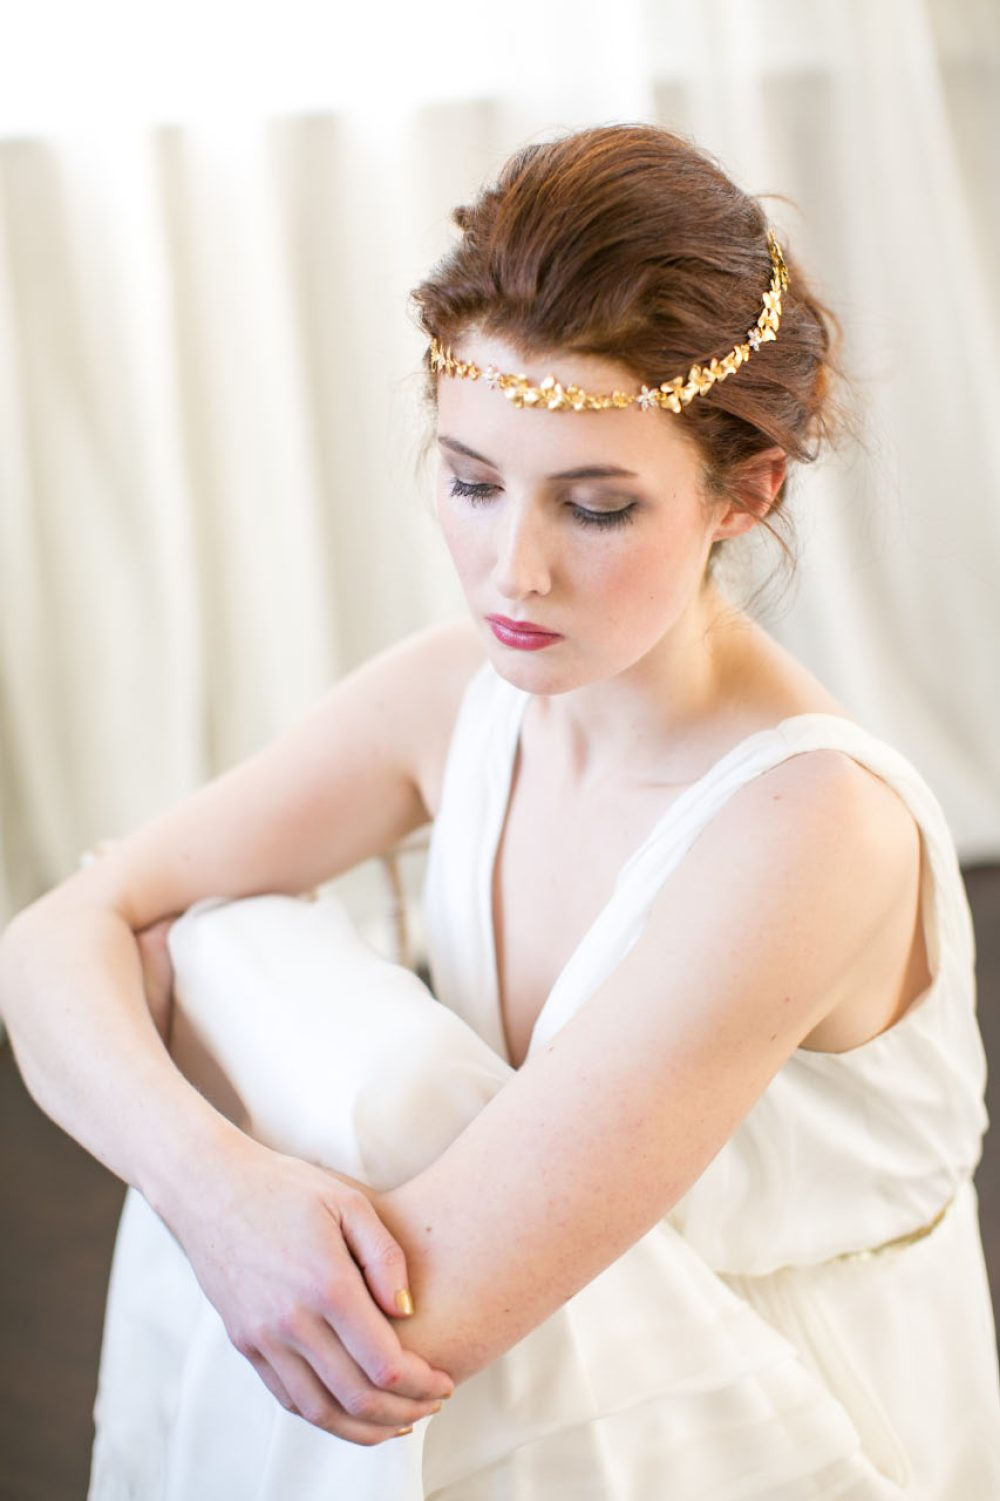 victoria-millesime-gold-orchid-forehead-band, Image by Anneli Marinovich